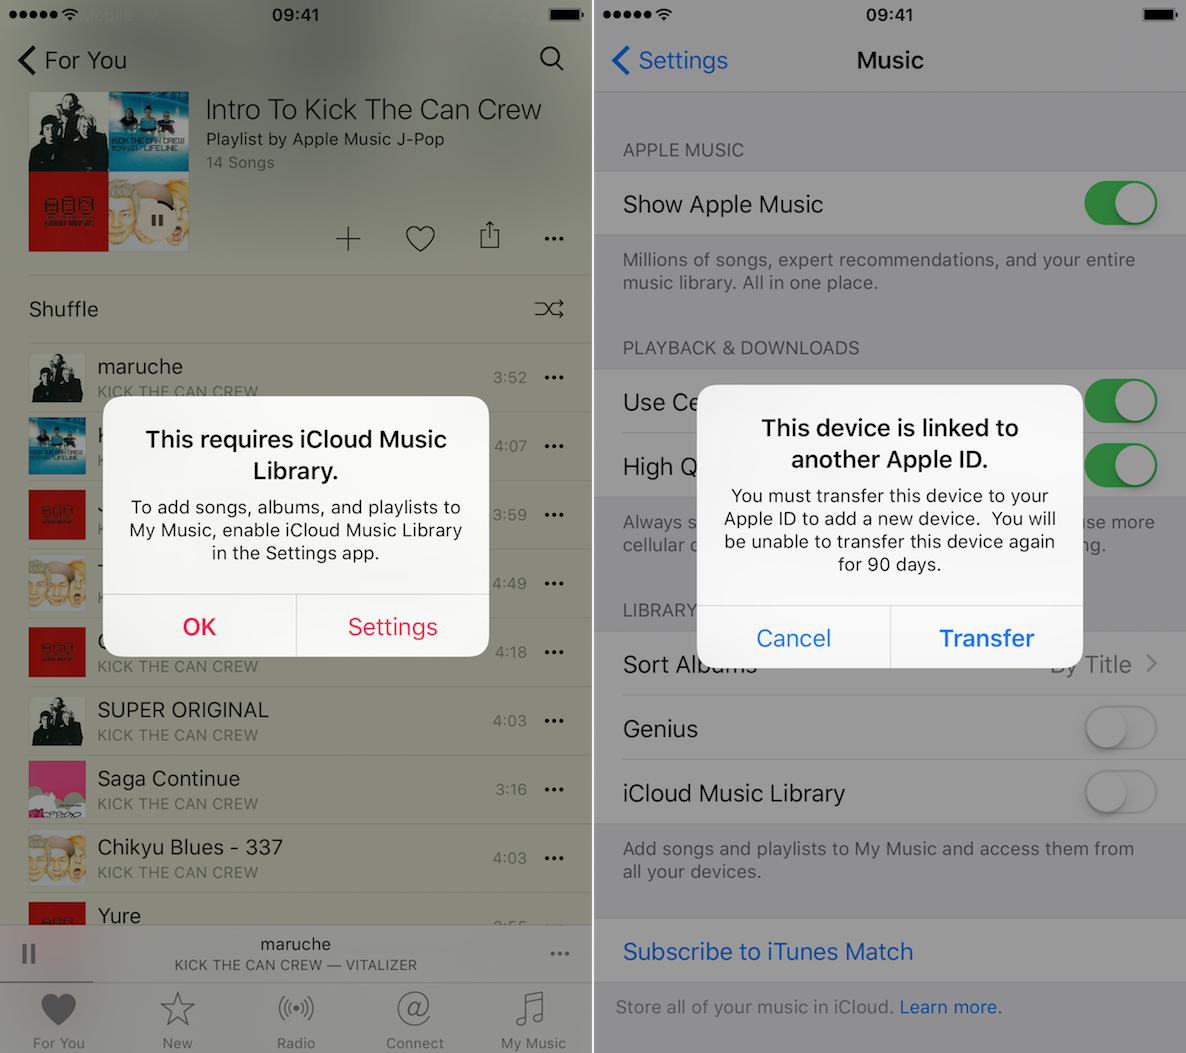 90 day Apple ID limit iCloud Music Library